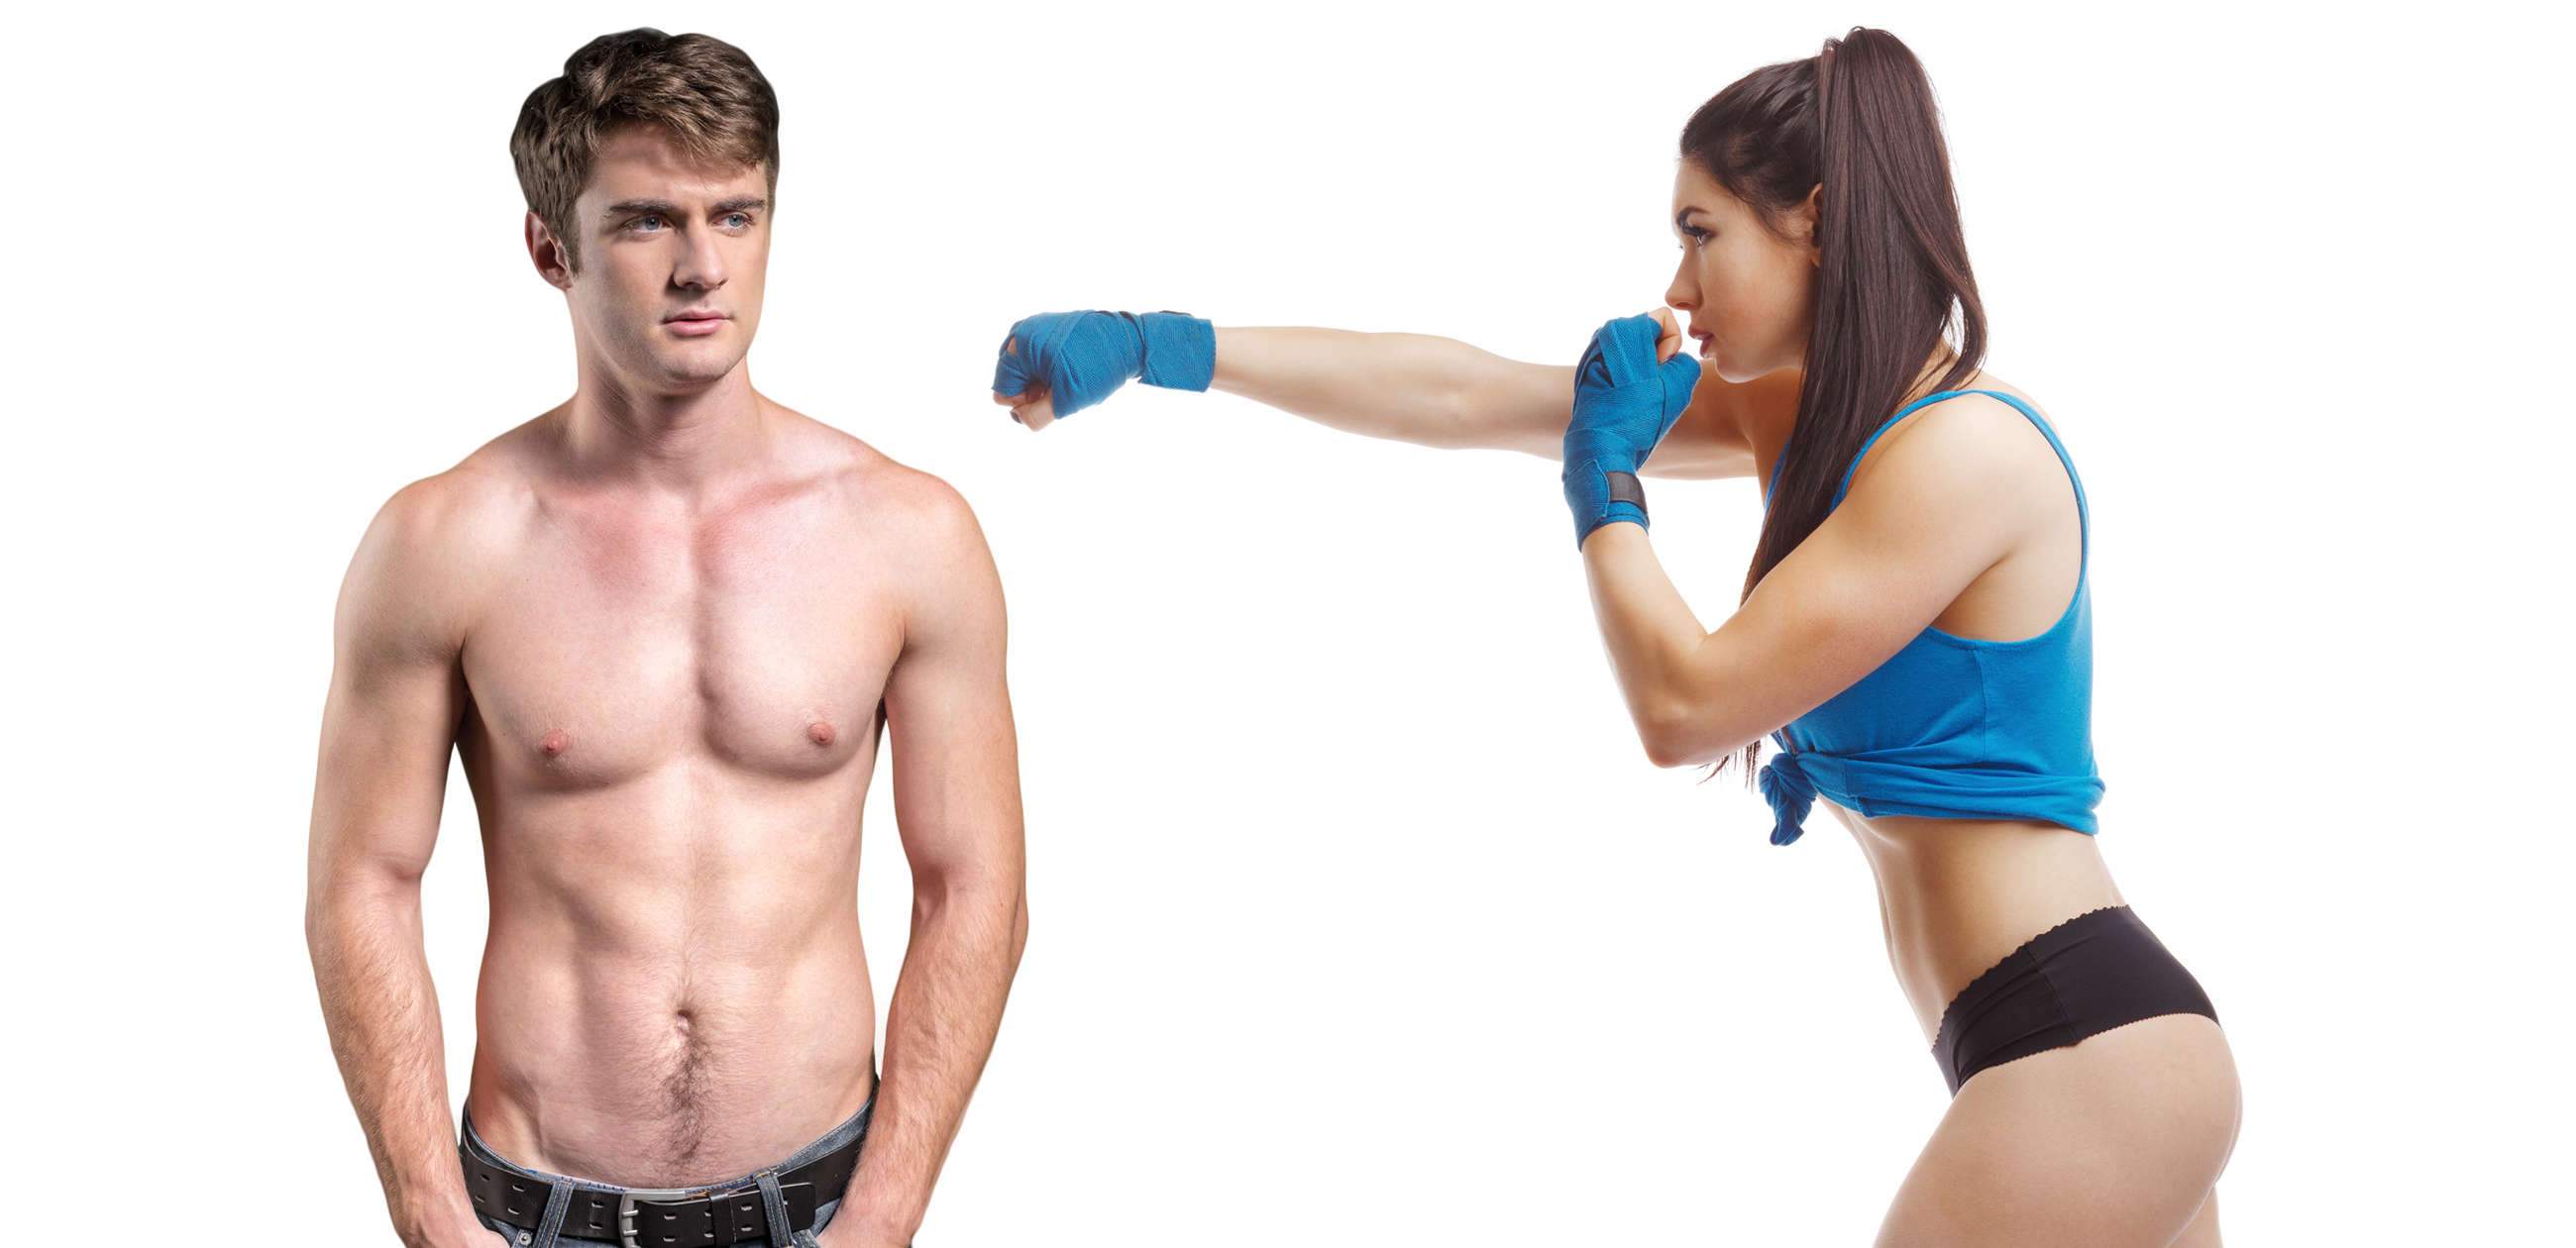 How to quickly gain muscle mass girl